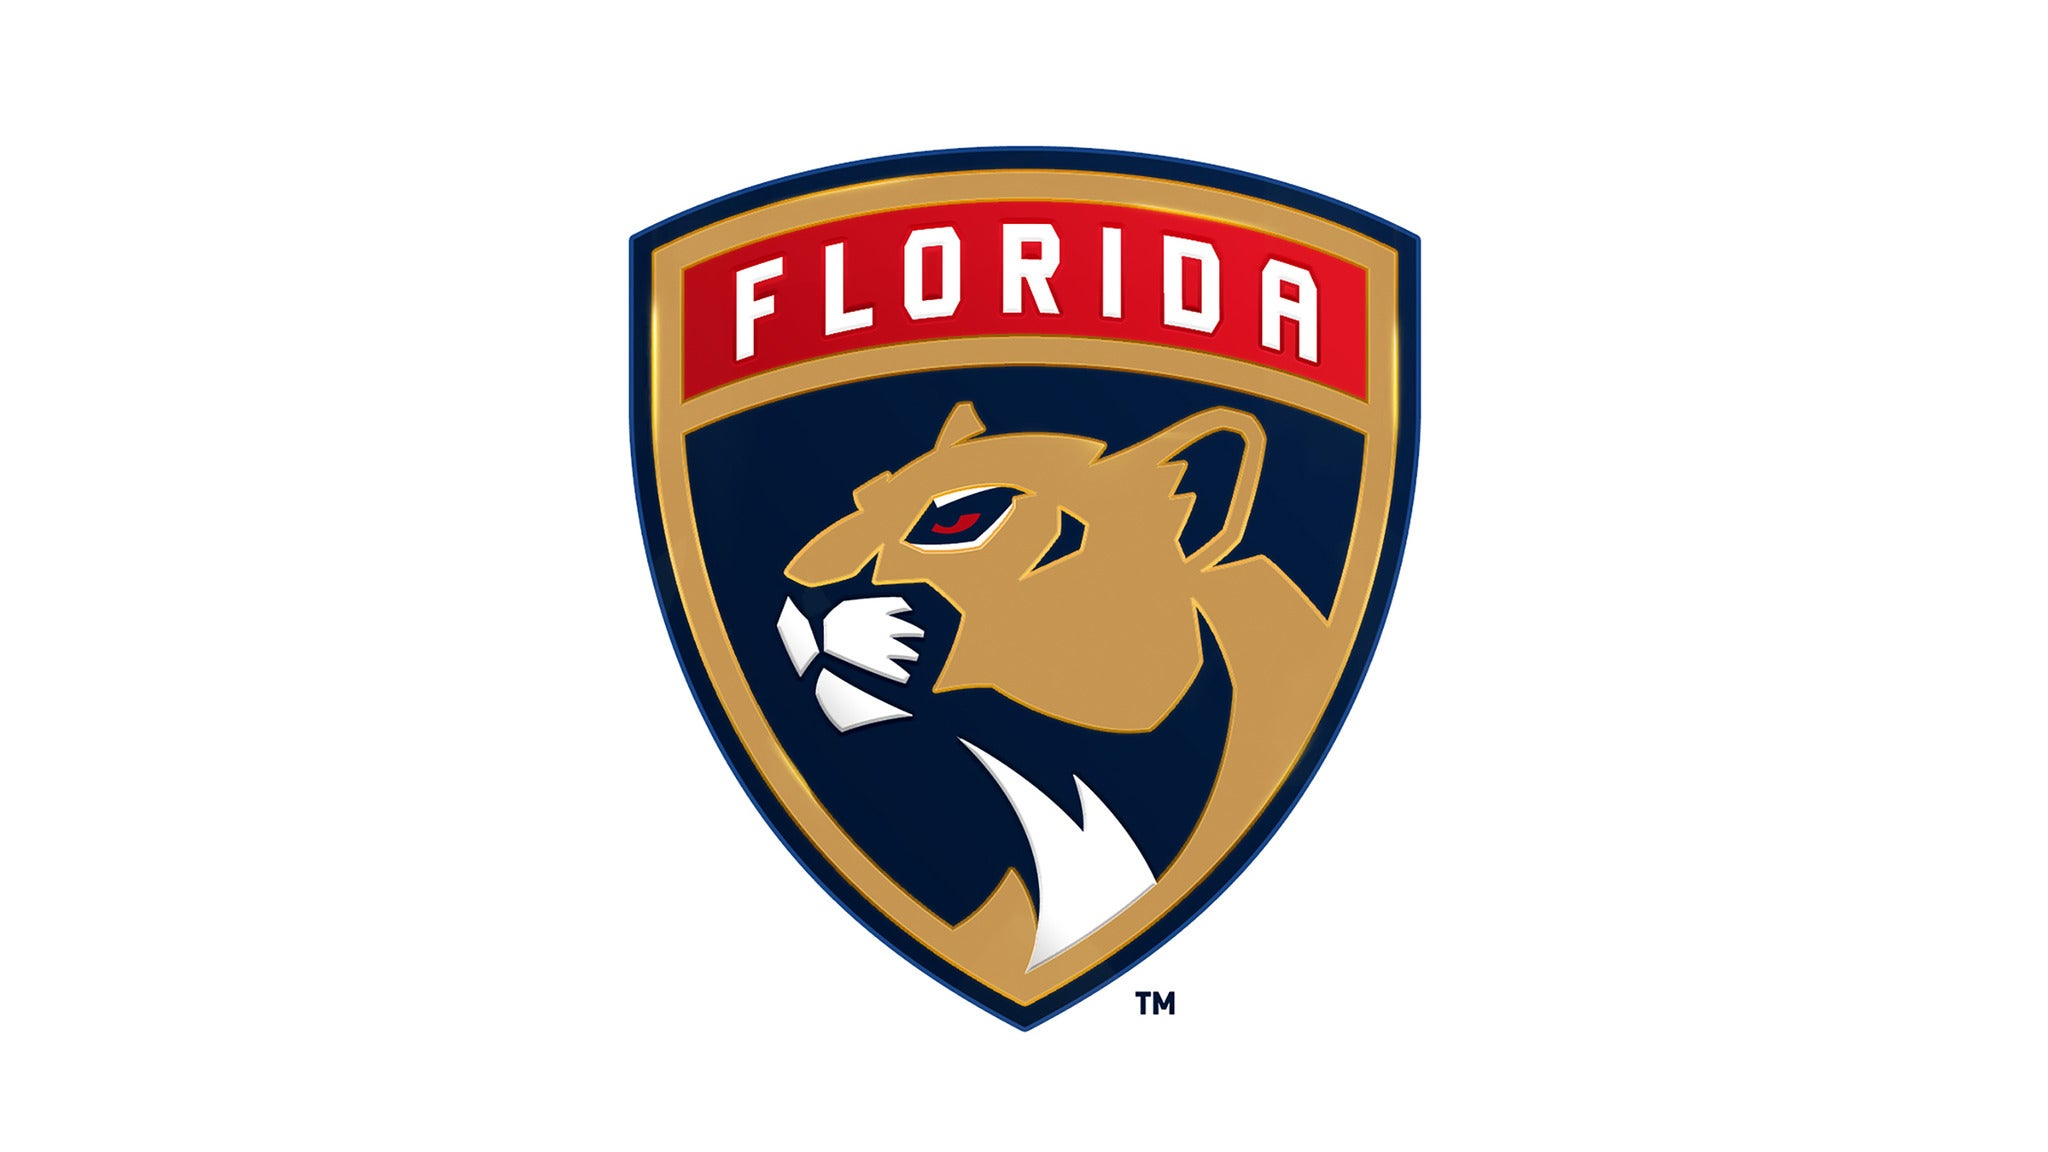 Florida Panthers v Winnipeg Jets at BB&T Center - Sunrise, FL 33323